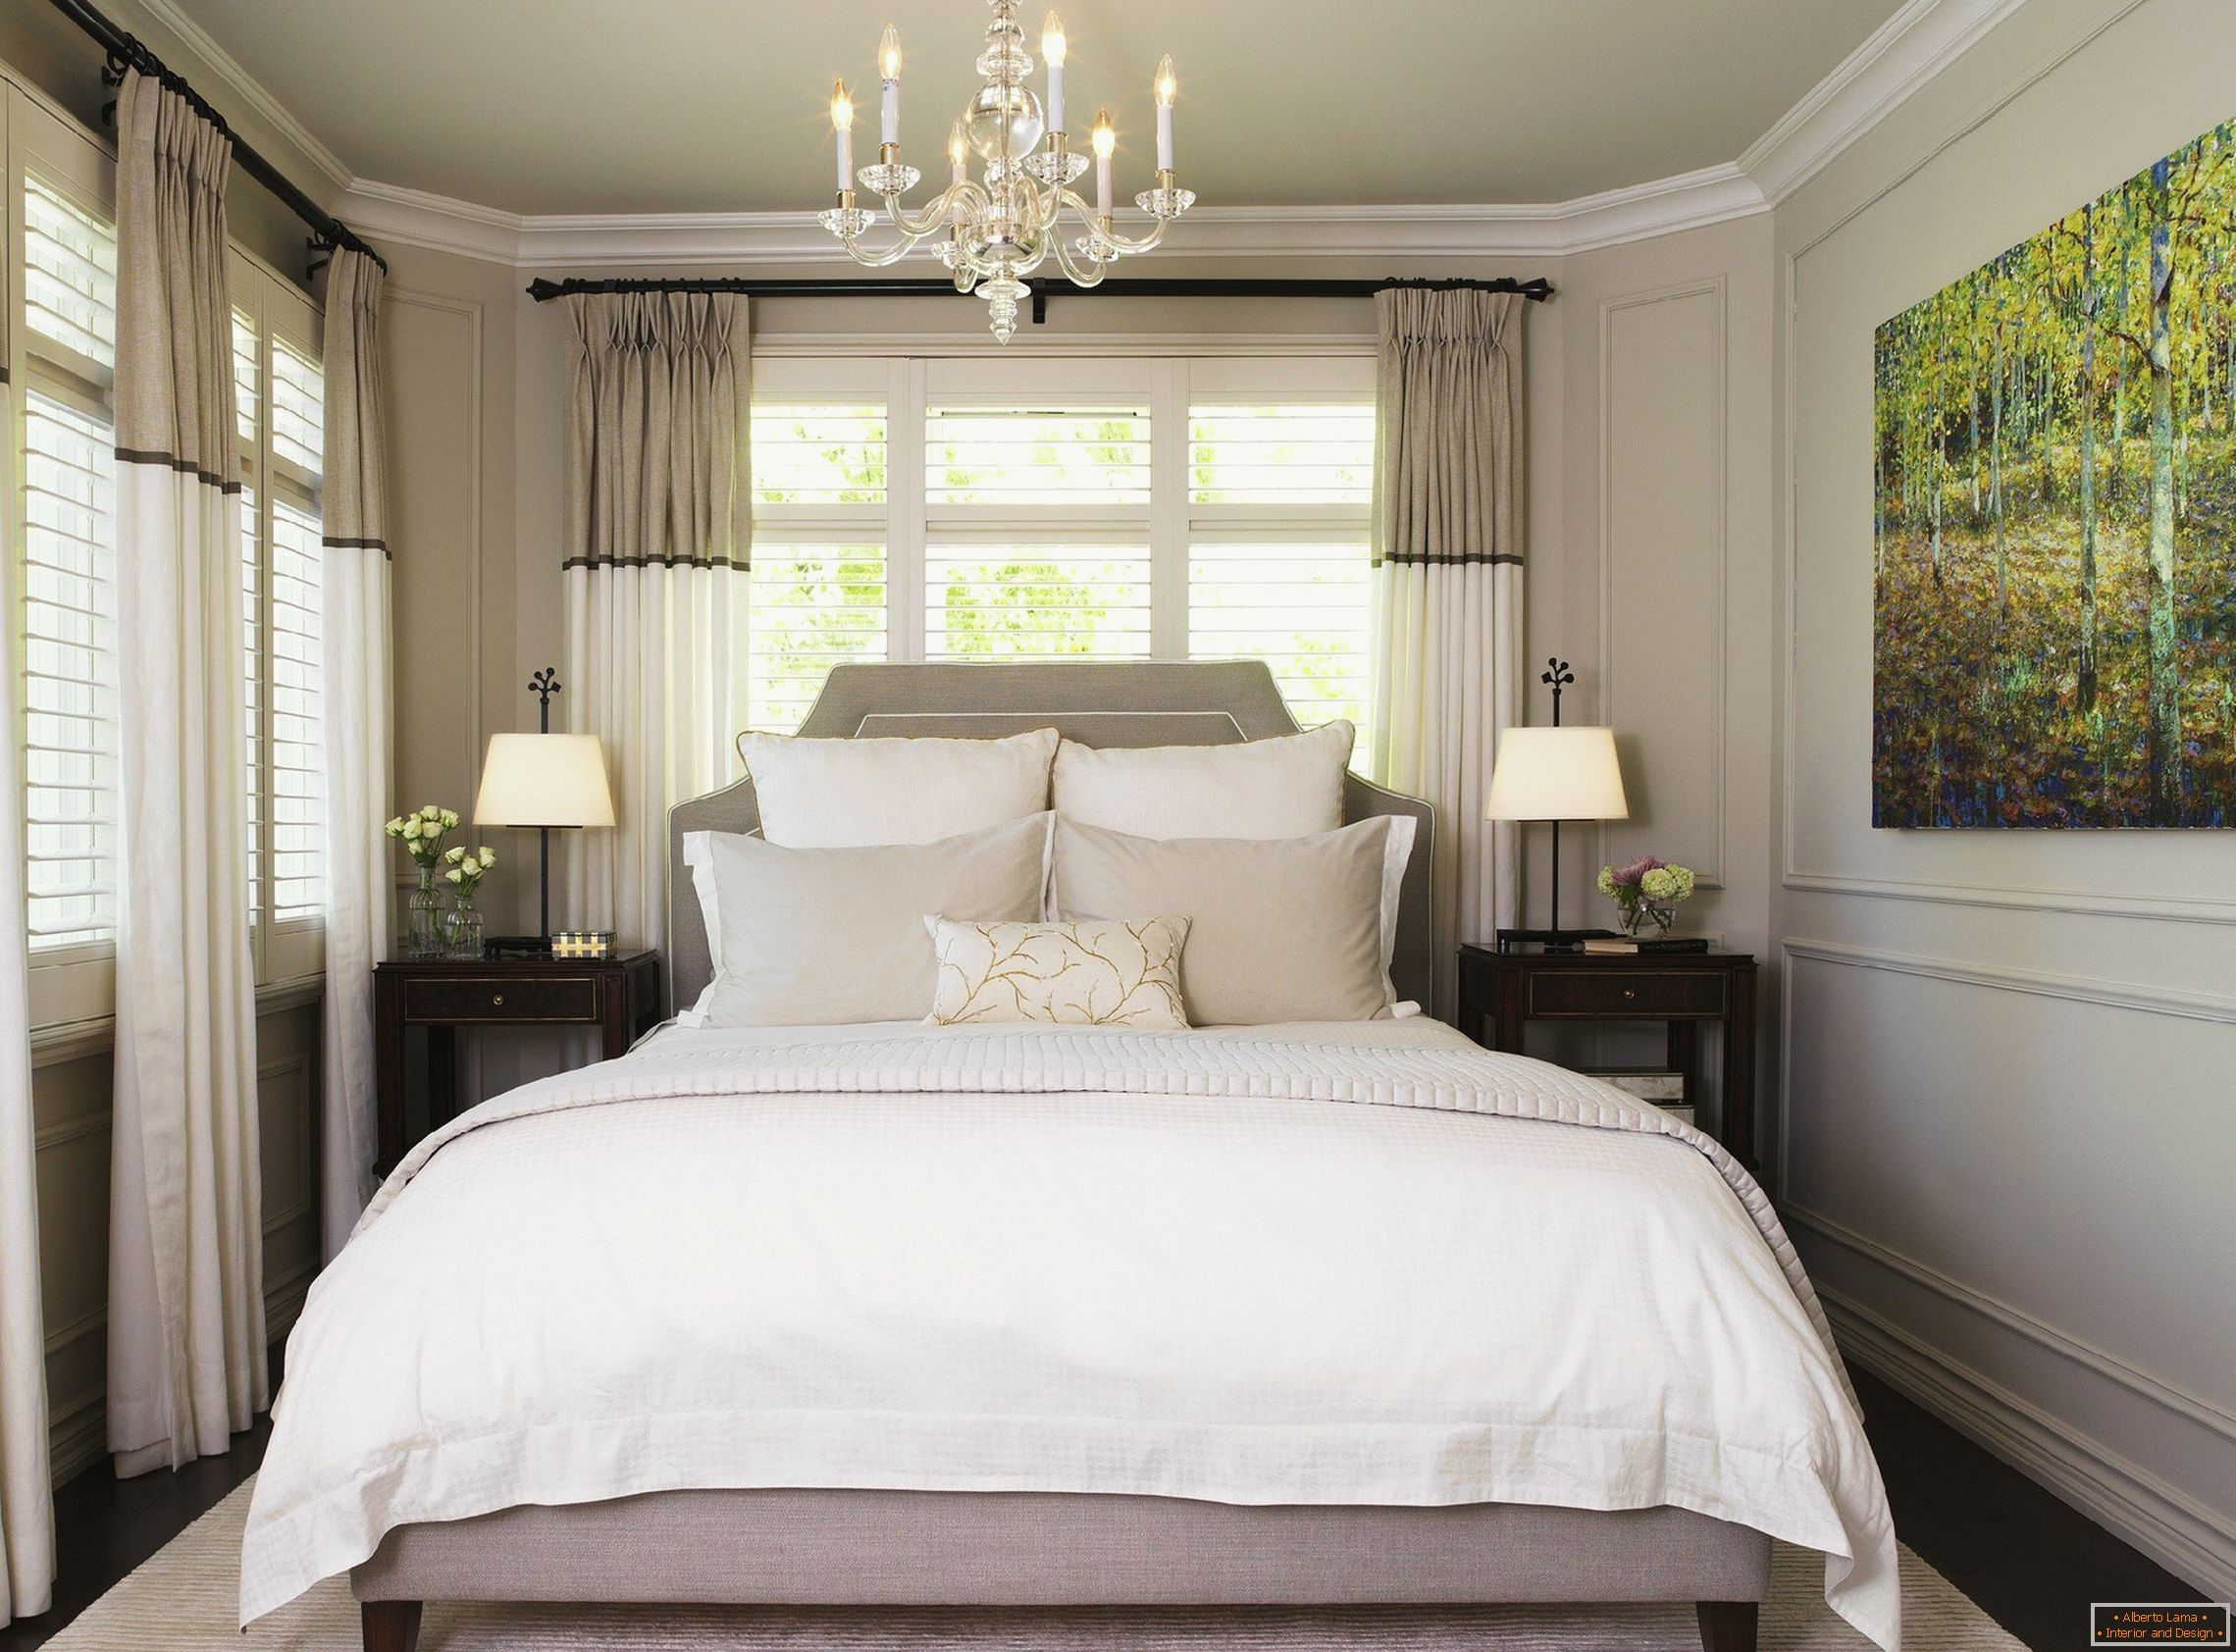 . 30 ideas for a narrow bedroom design   interior layout